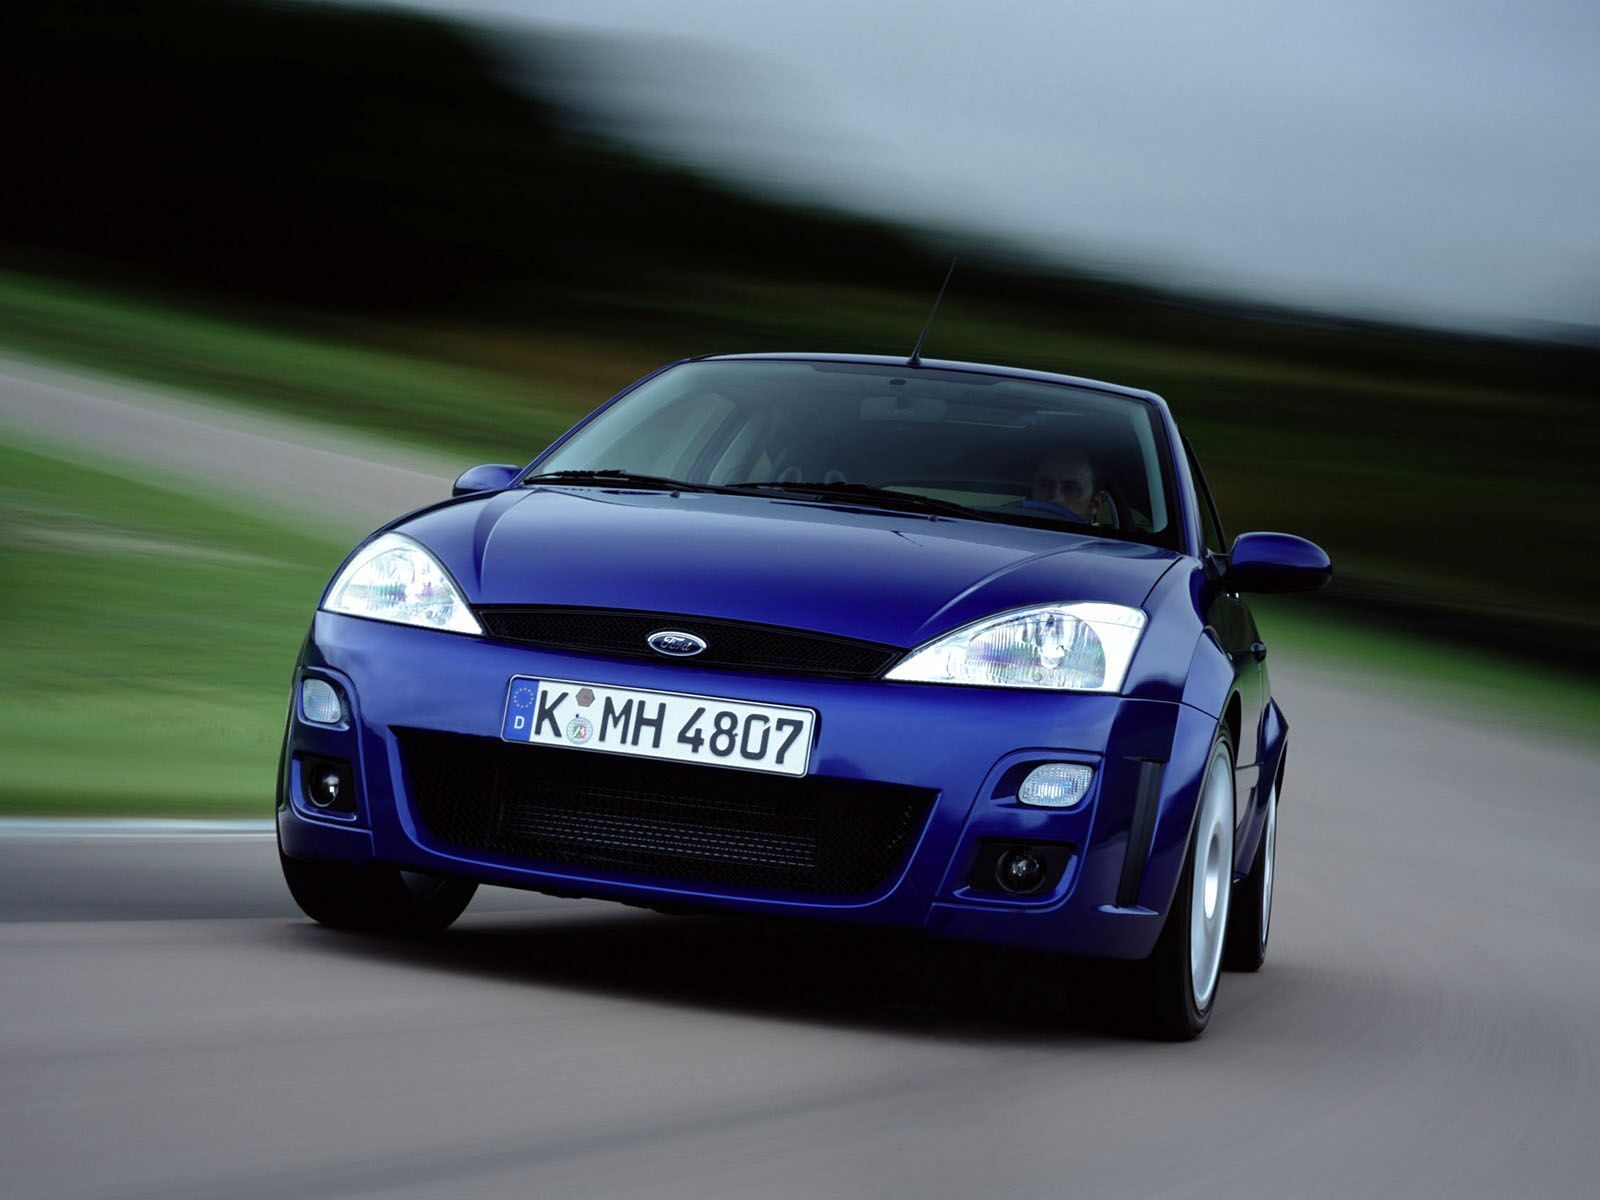 2002 ford focus rs review gallery top speed. Black Bedroom Furniture Sets. Home Design Ideas